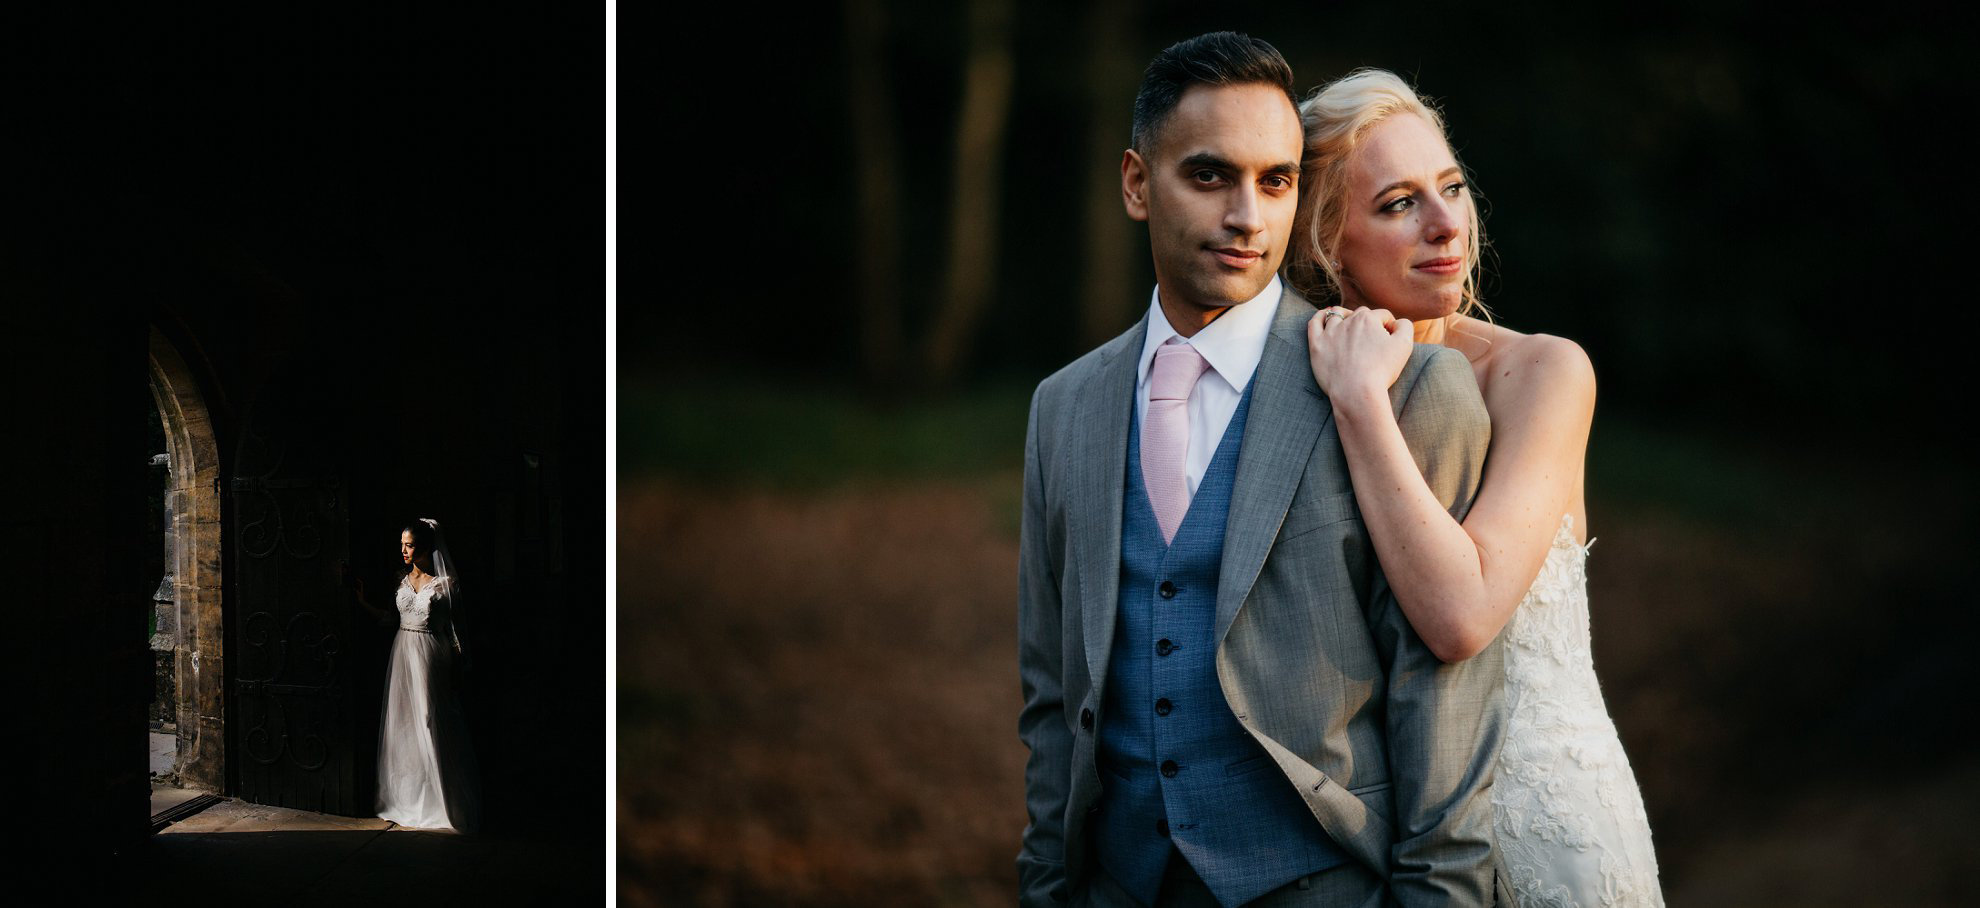 Severndroog Castle wedding